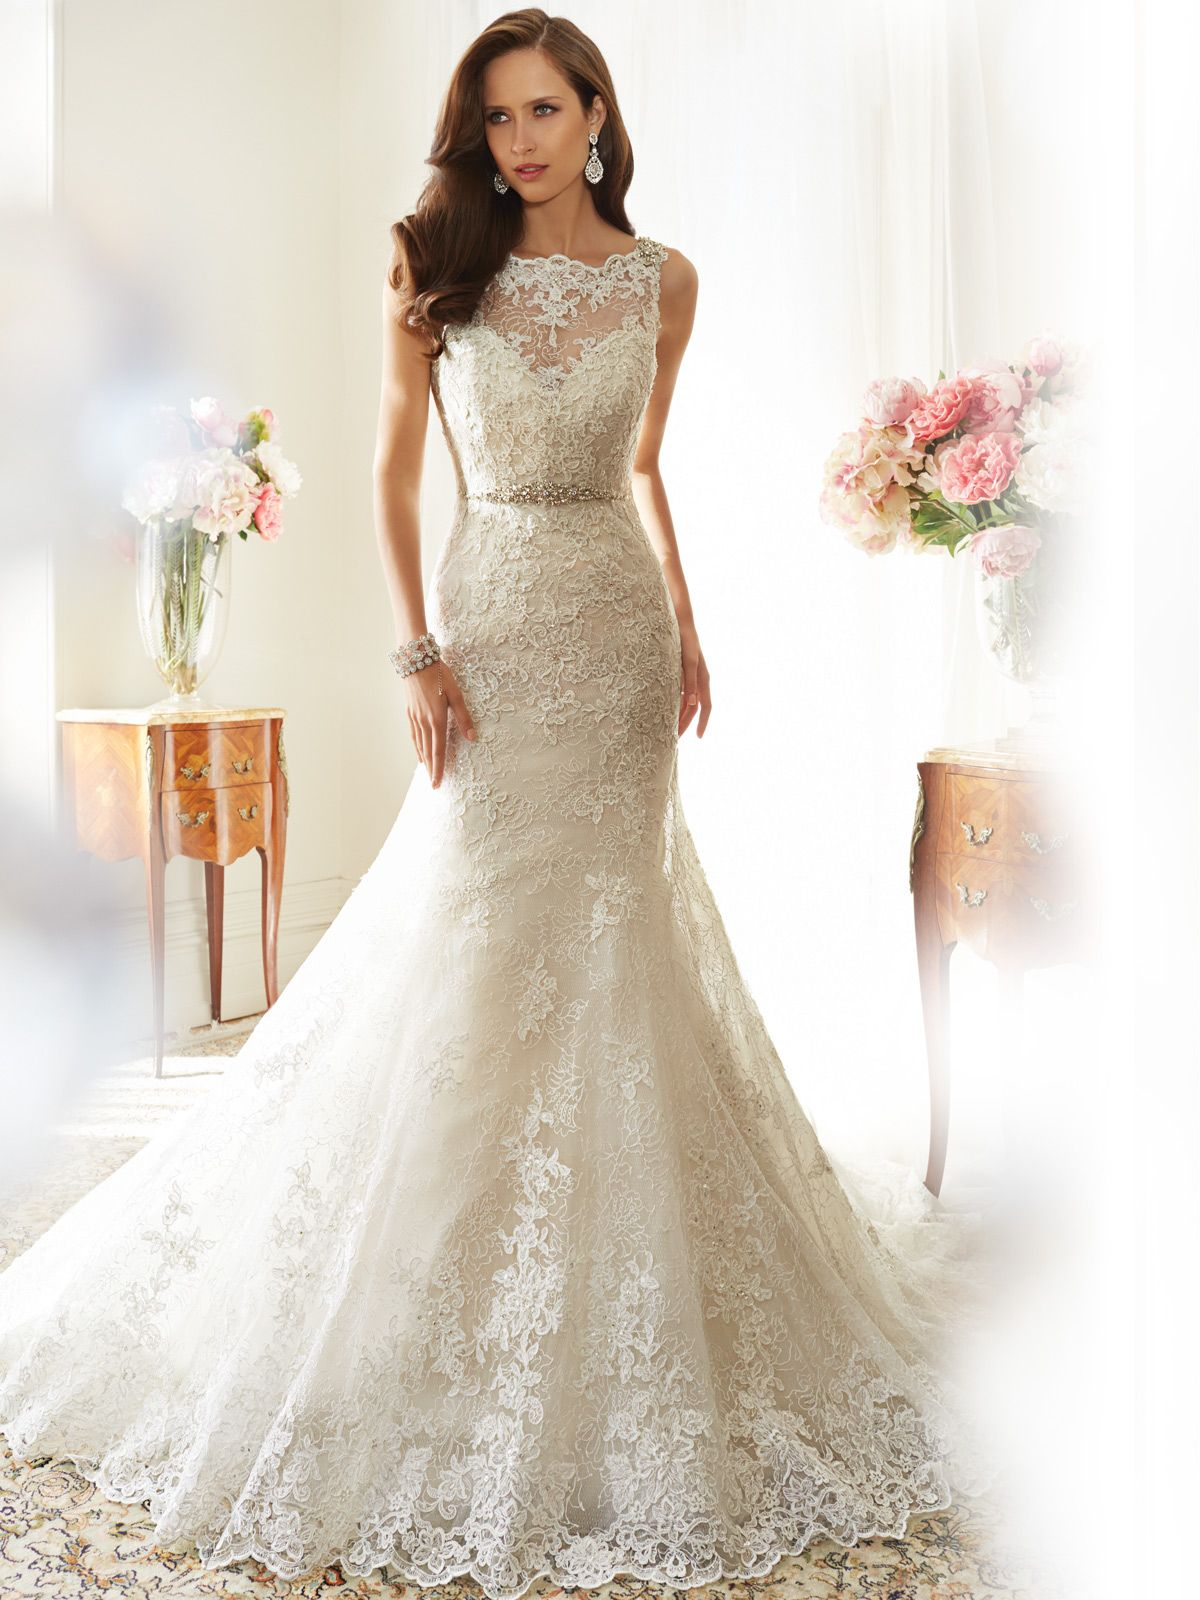 1000  images about wedding dresses on Pinterest - Maggie sottero ...